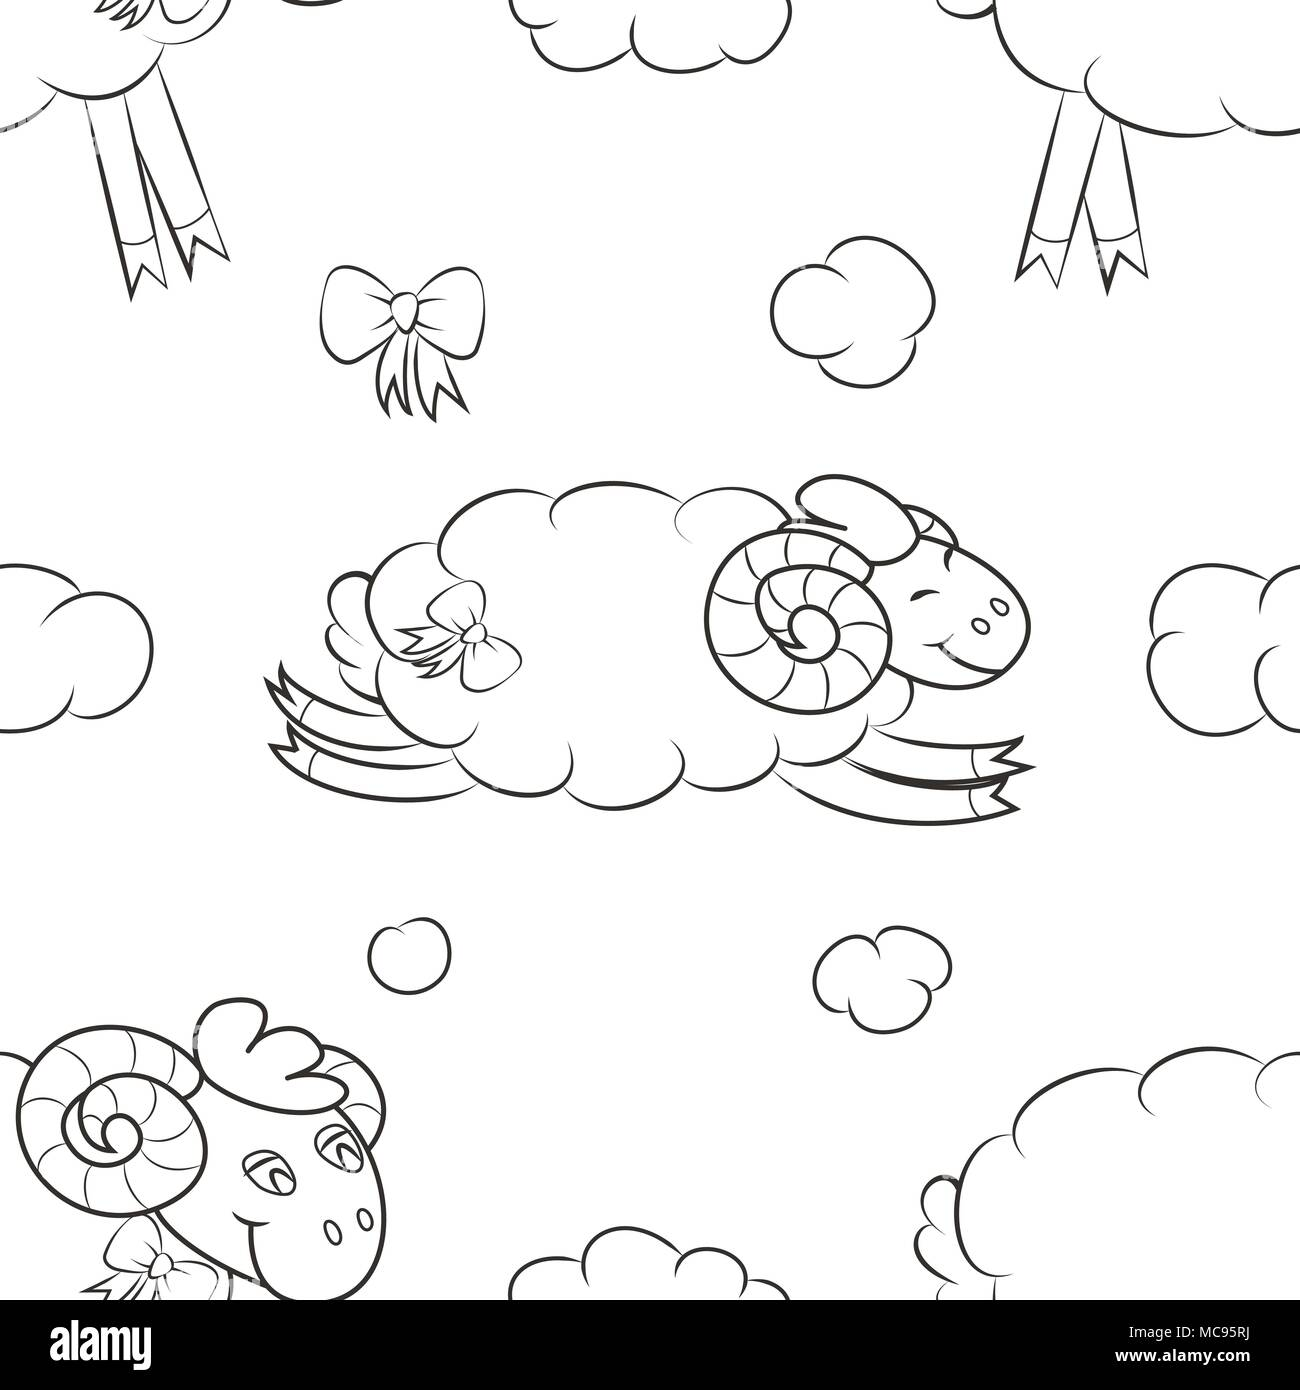 Furry sheep flying in the clouds - Stock Image